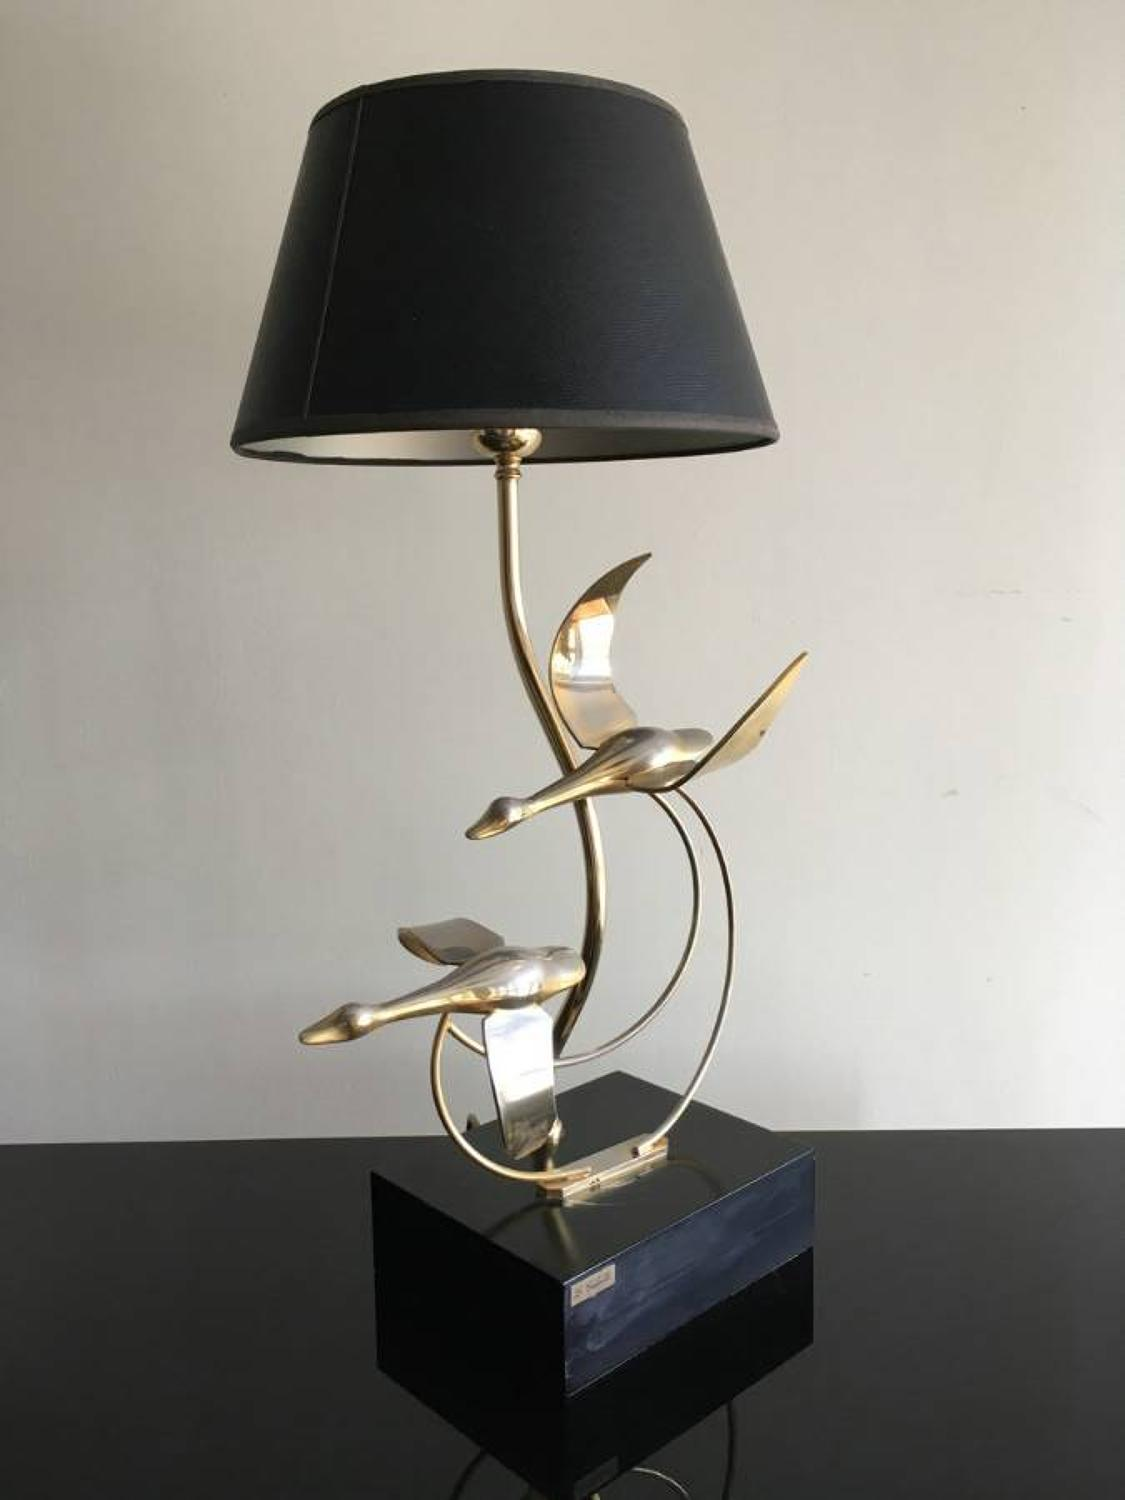 Gilt metal geese lamp by L. Galeotti